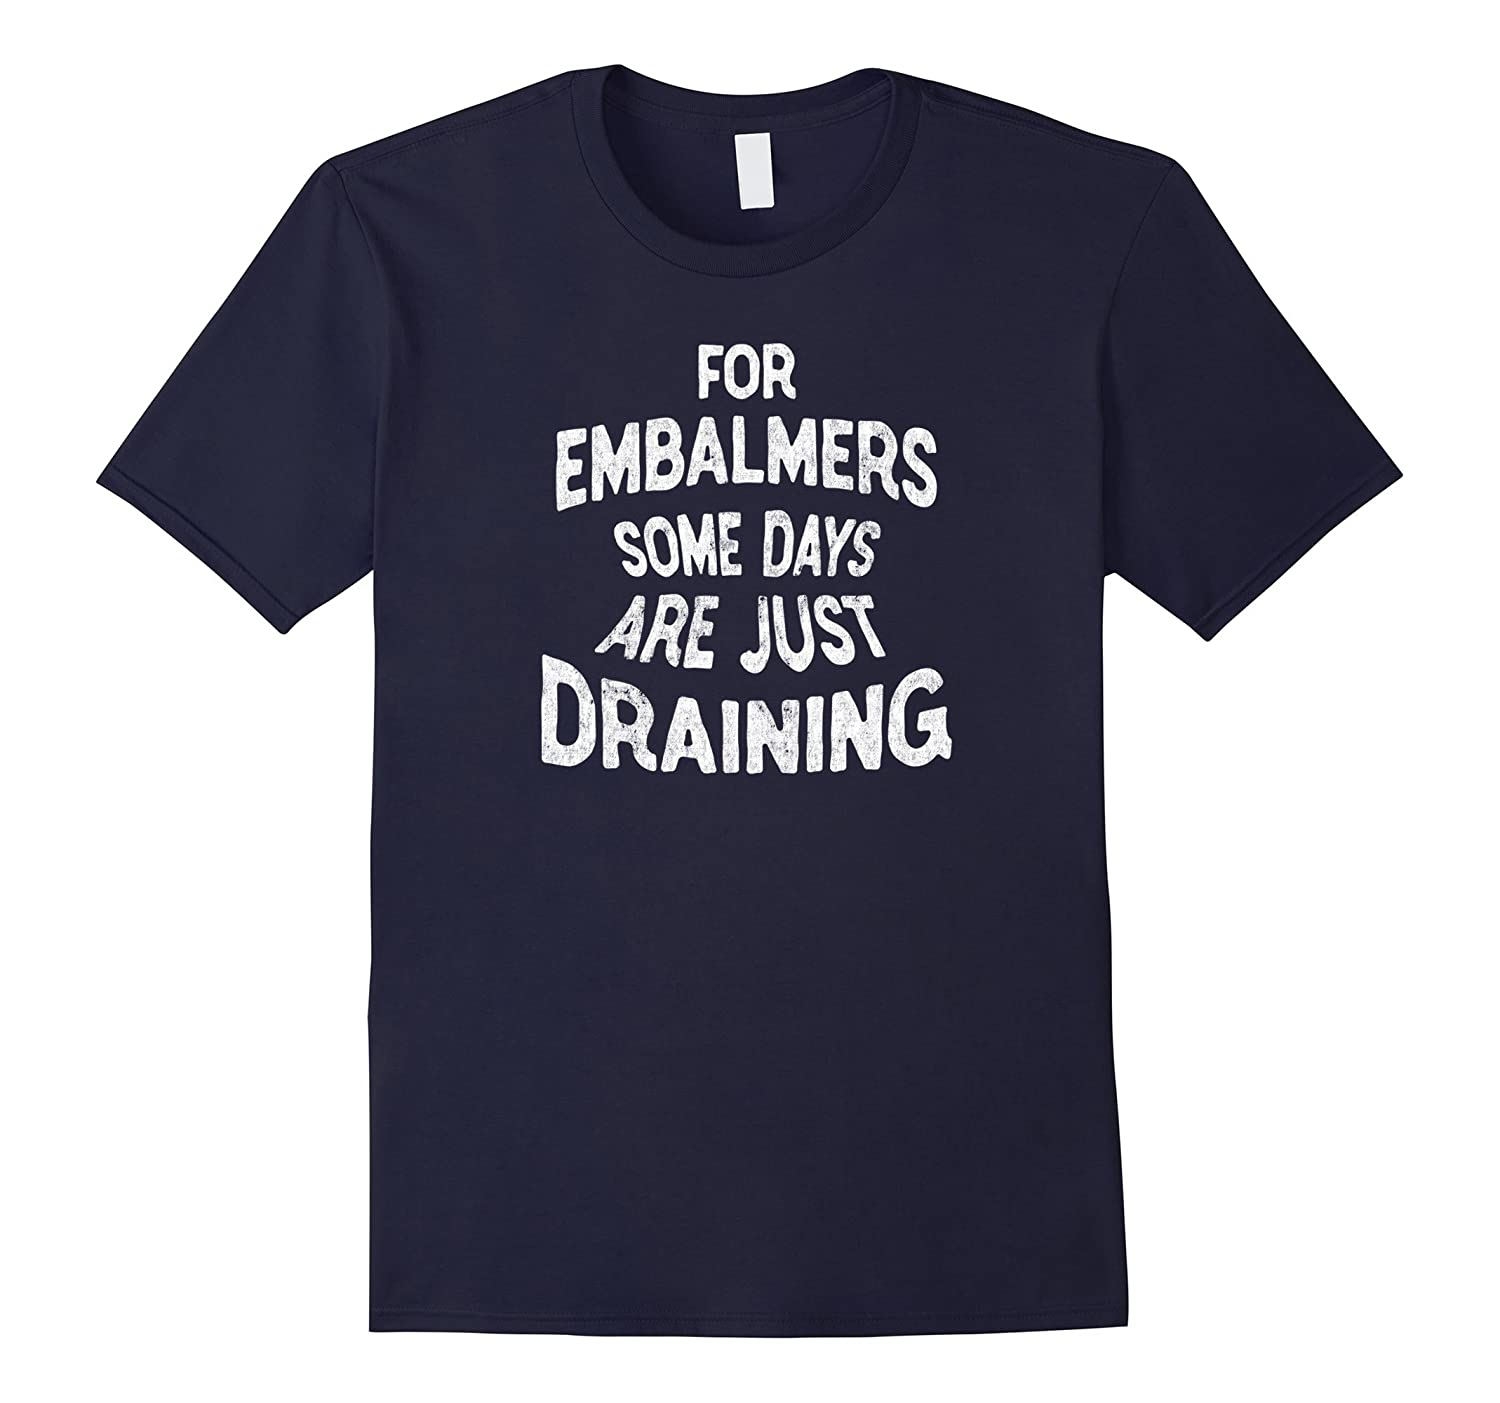 For Embalmers Some Days Are Just Draining - Funny T-Shirt-TD